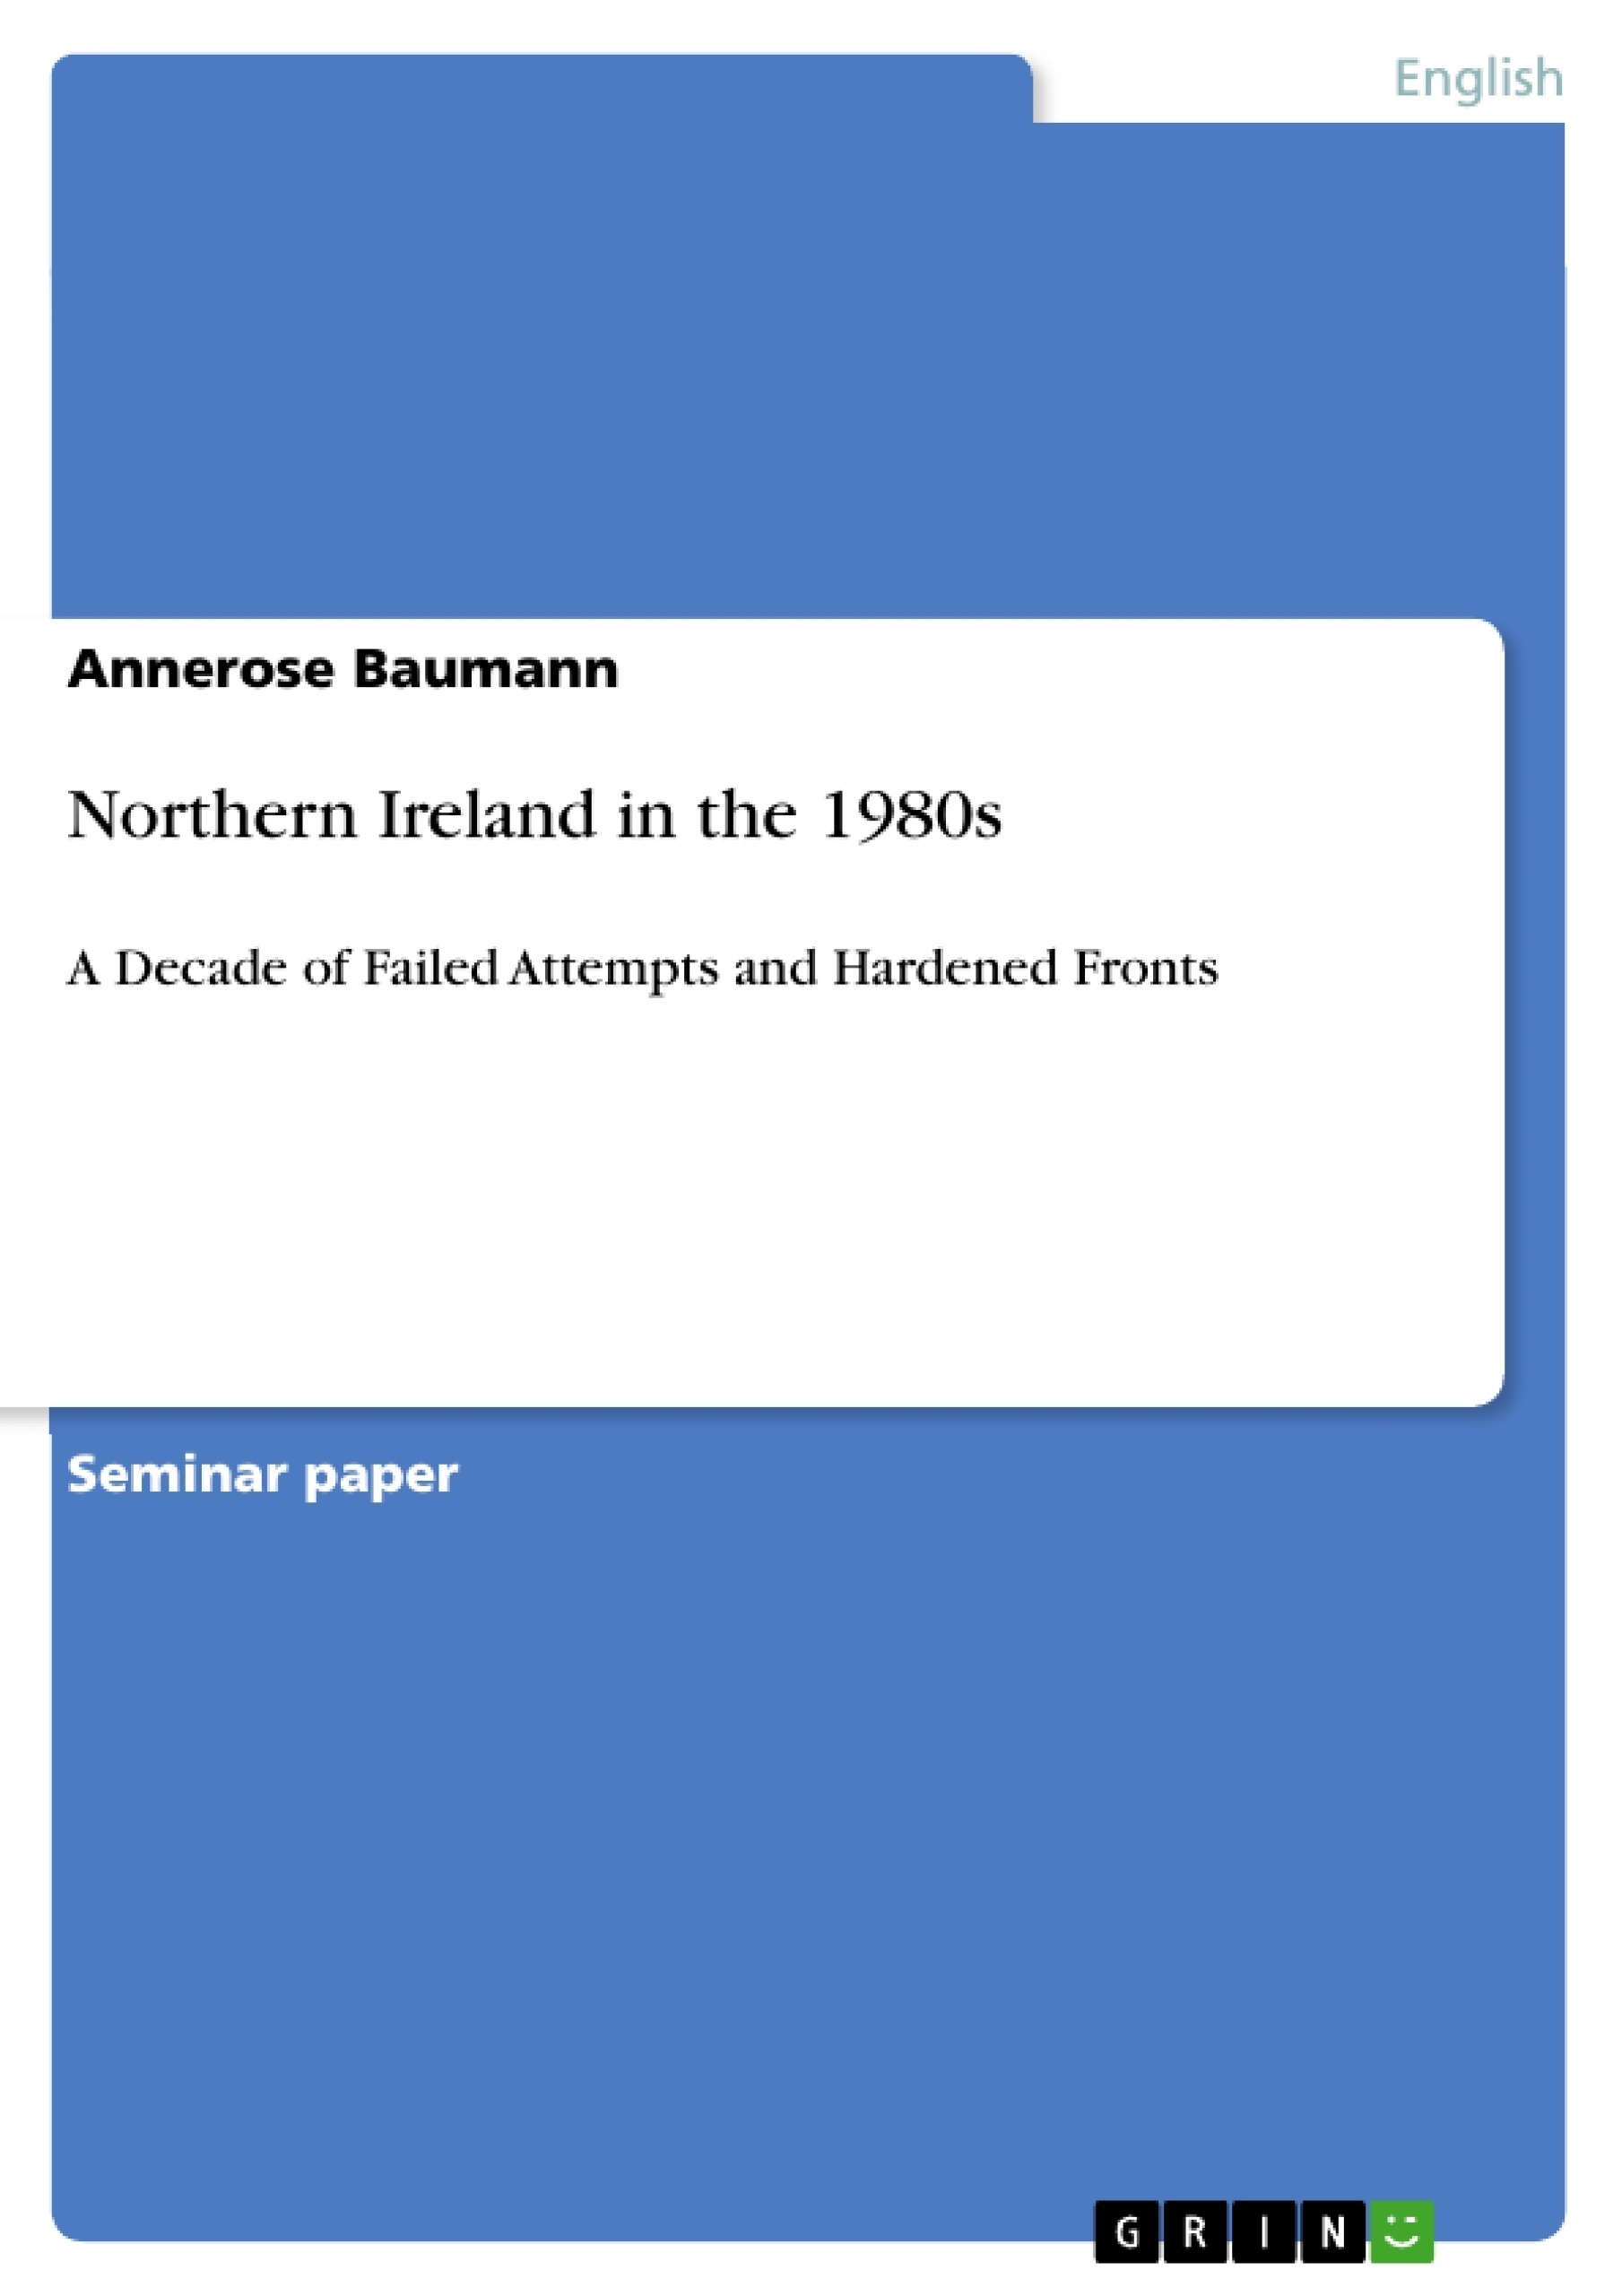 Title: Northern Ireland in the 1980s